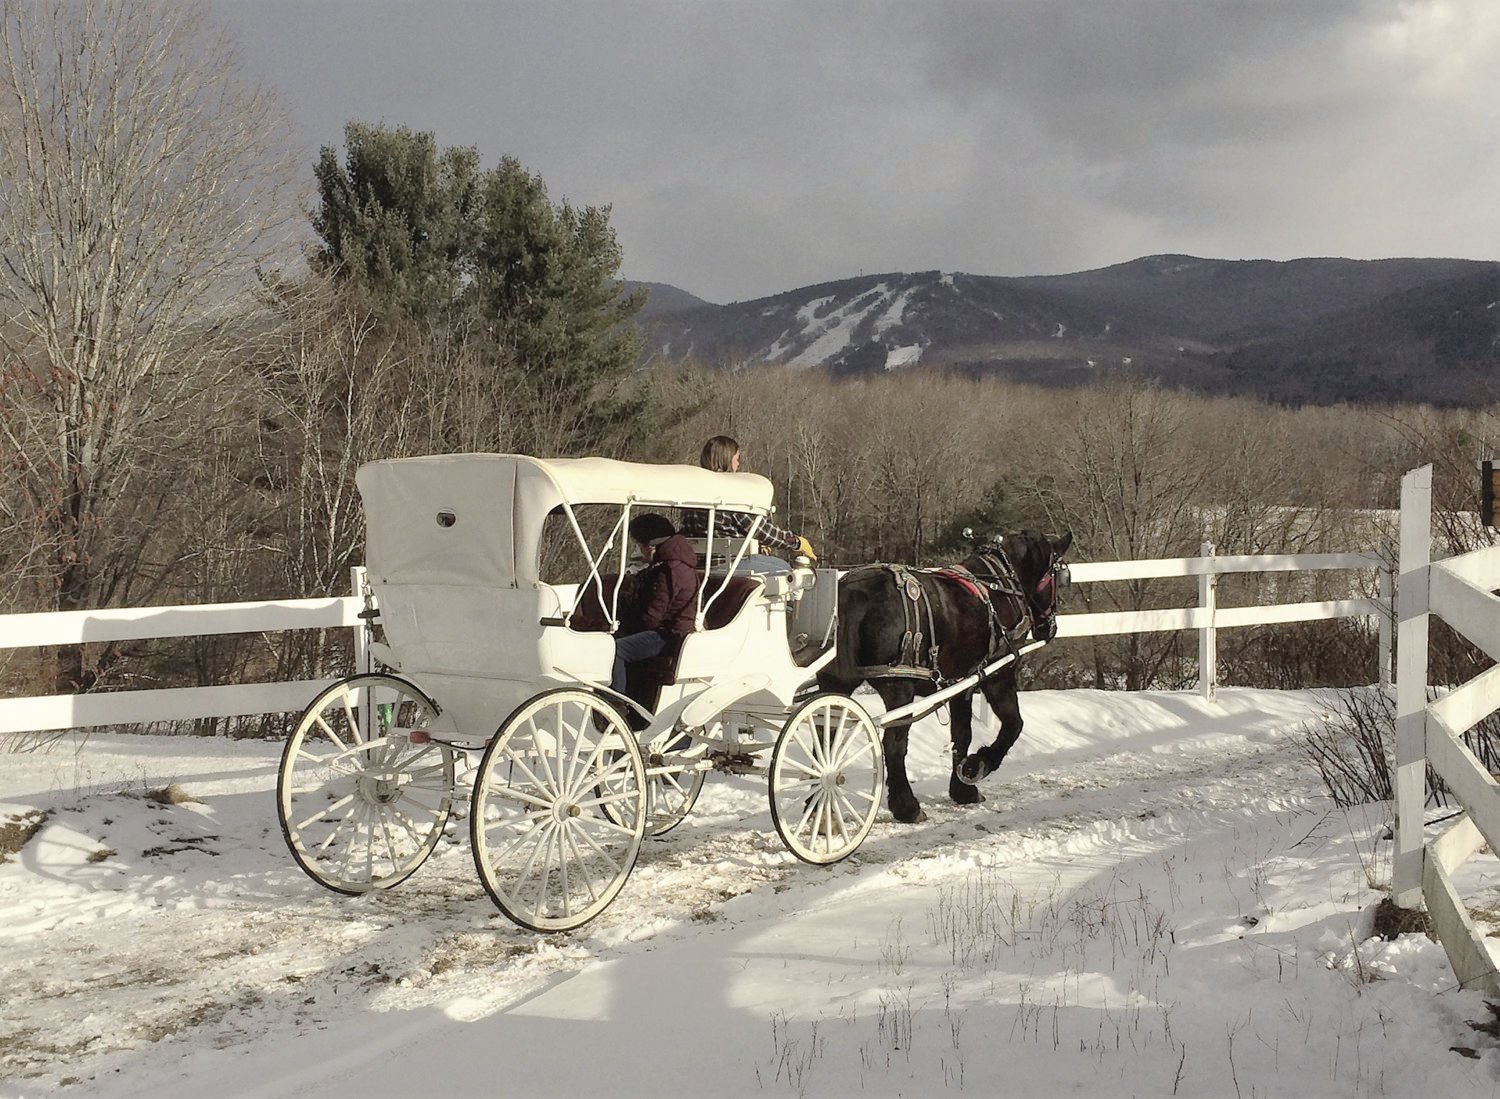 Winter Notes Riding Into A Christmas Card Scene On A Horse Drawn Winter Tour Winter Fun Unionleader Com